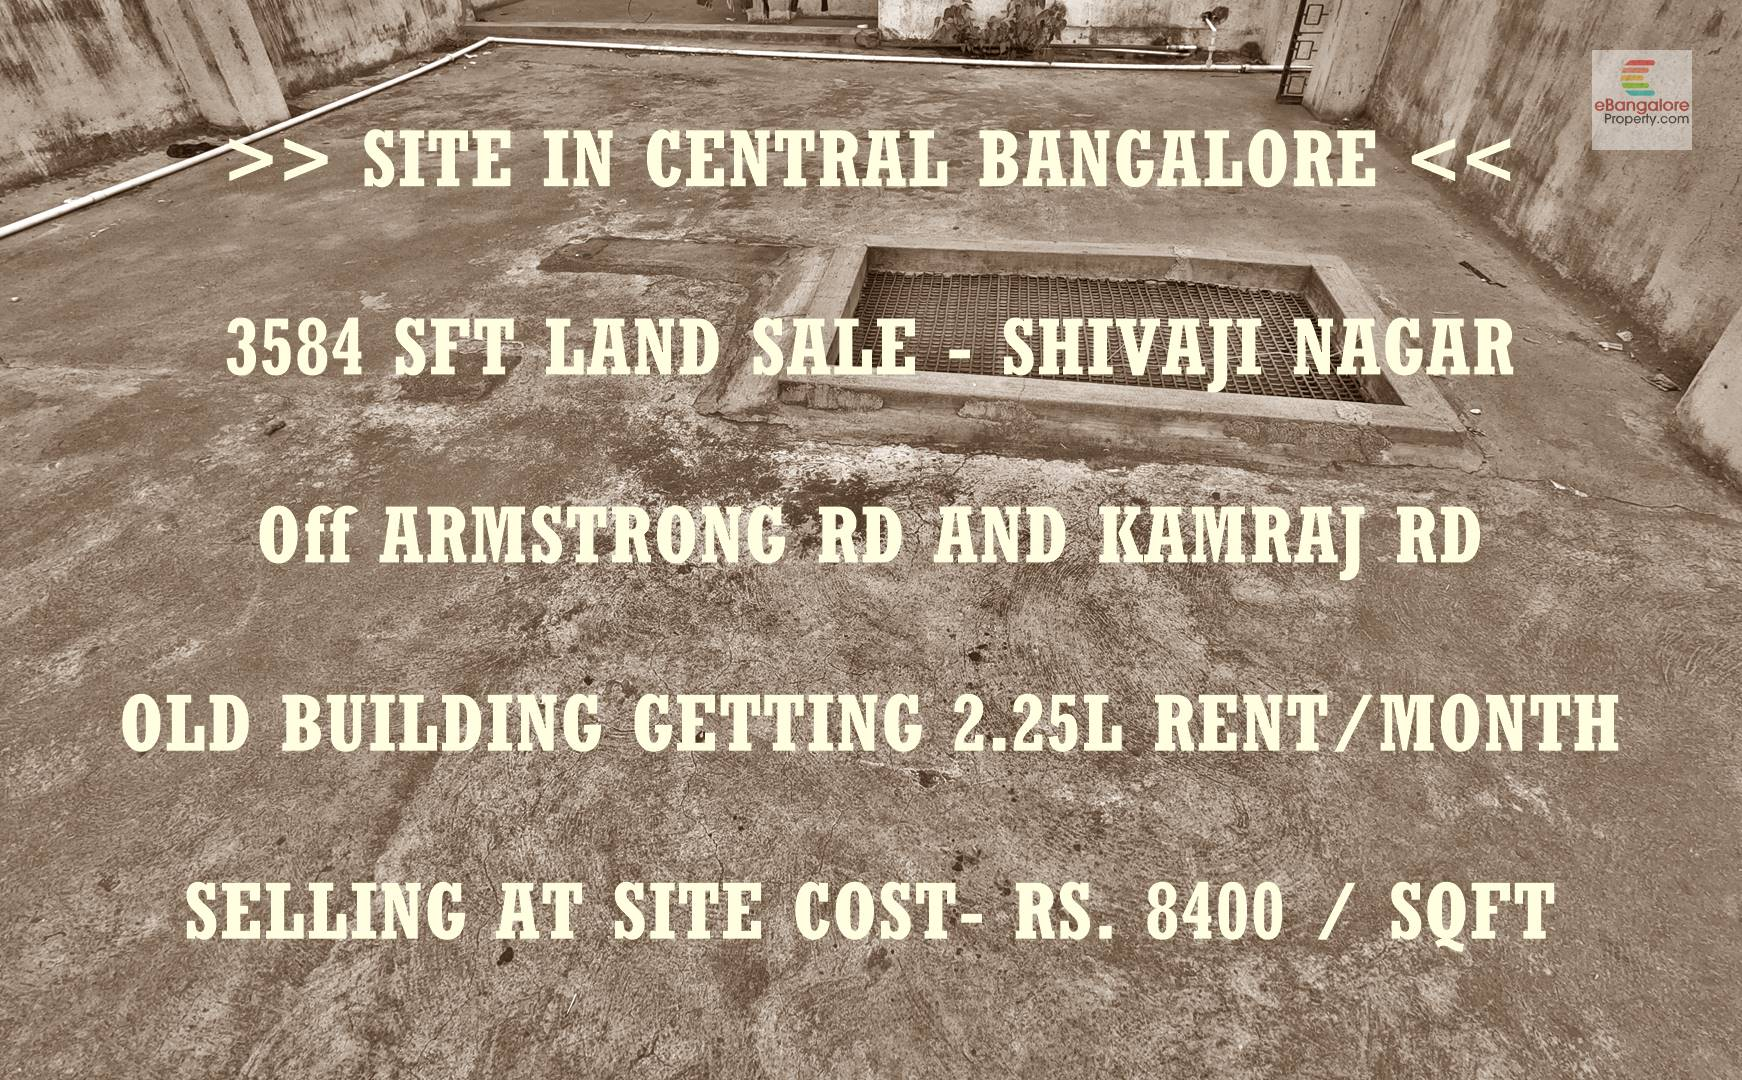 Shivajinagar Off Armstrong Road – 3584 Sqft Land For Sale With Old Building – 2.25 Lakh Ongoing Rental Income